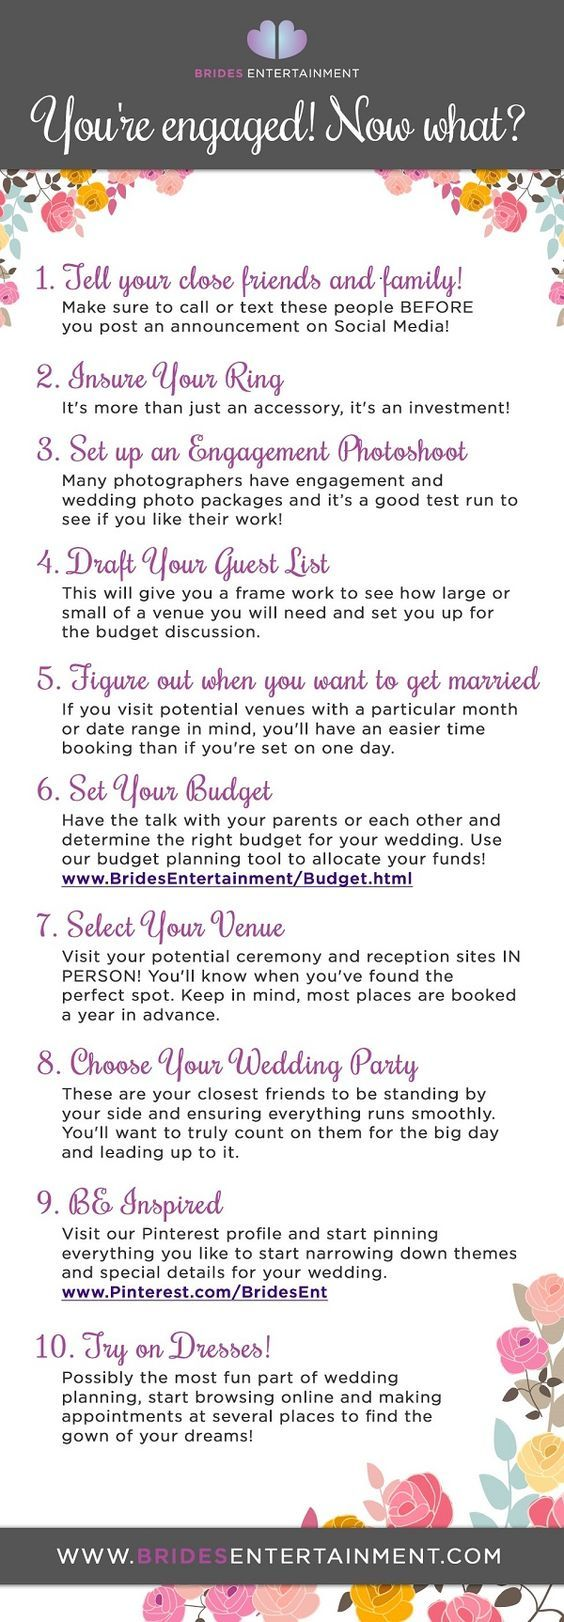 Events by Gia found this informative Chart for things you need to do after you get engaged!  #atlanta #eventsbygia #weddingplanning #eventcompany #corporateevent #sherwoodeventhall #wedding #atlantawedding #weddingideas #entertaining #atlantavenues #entertainment #partyideas #weddingtodolist